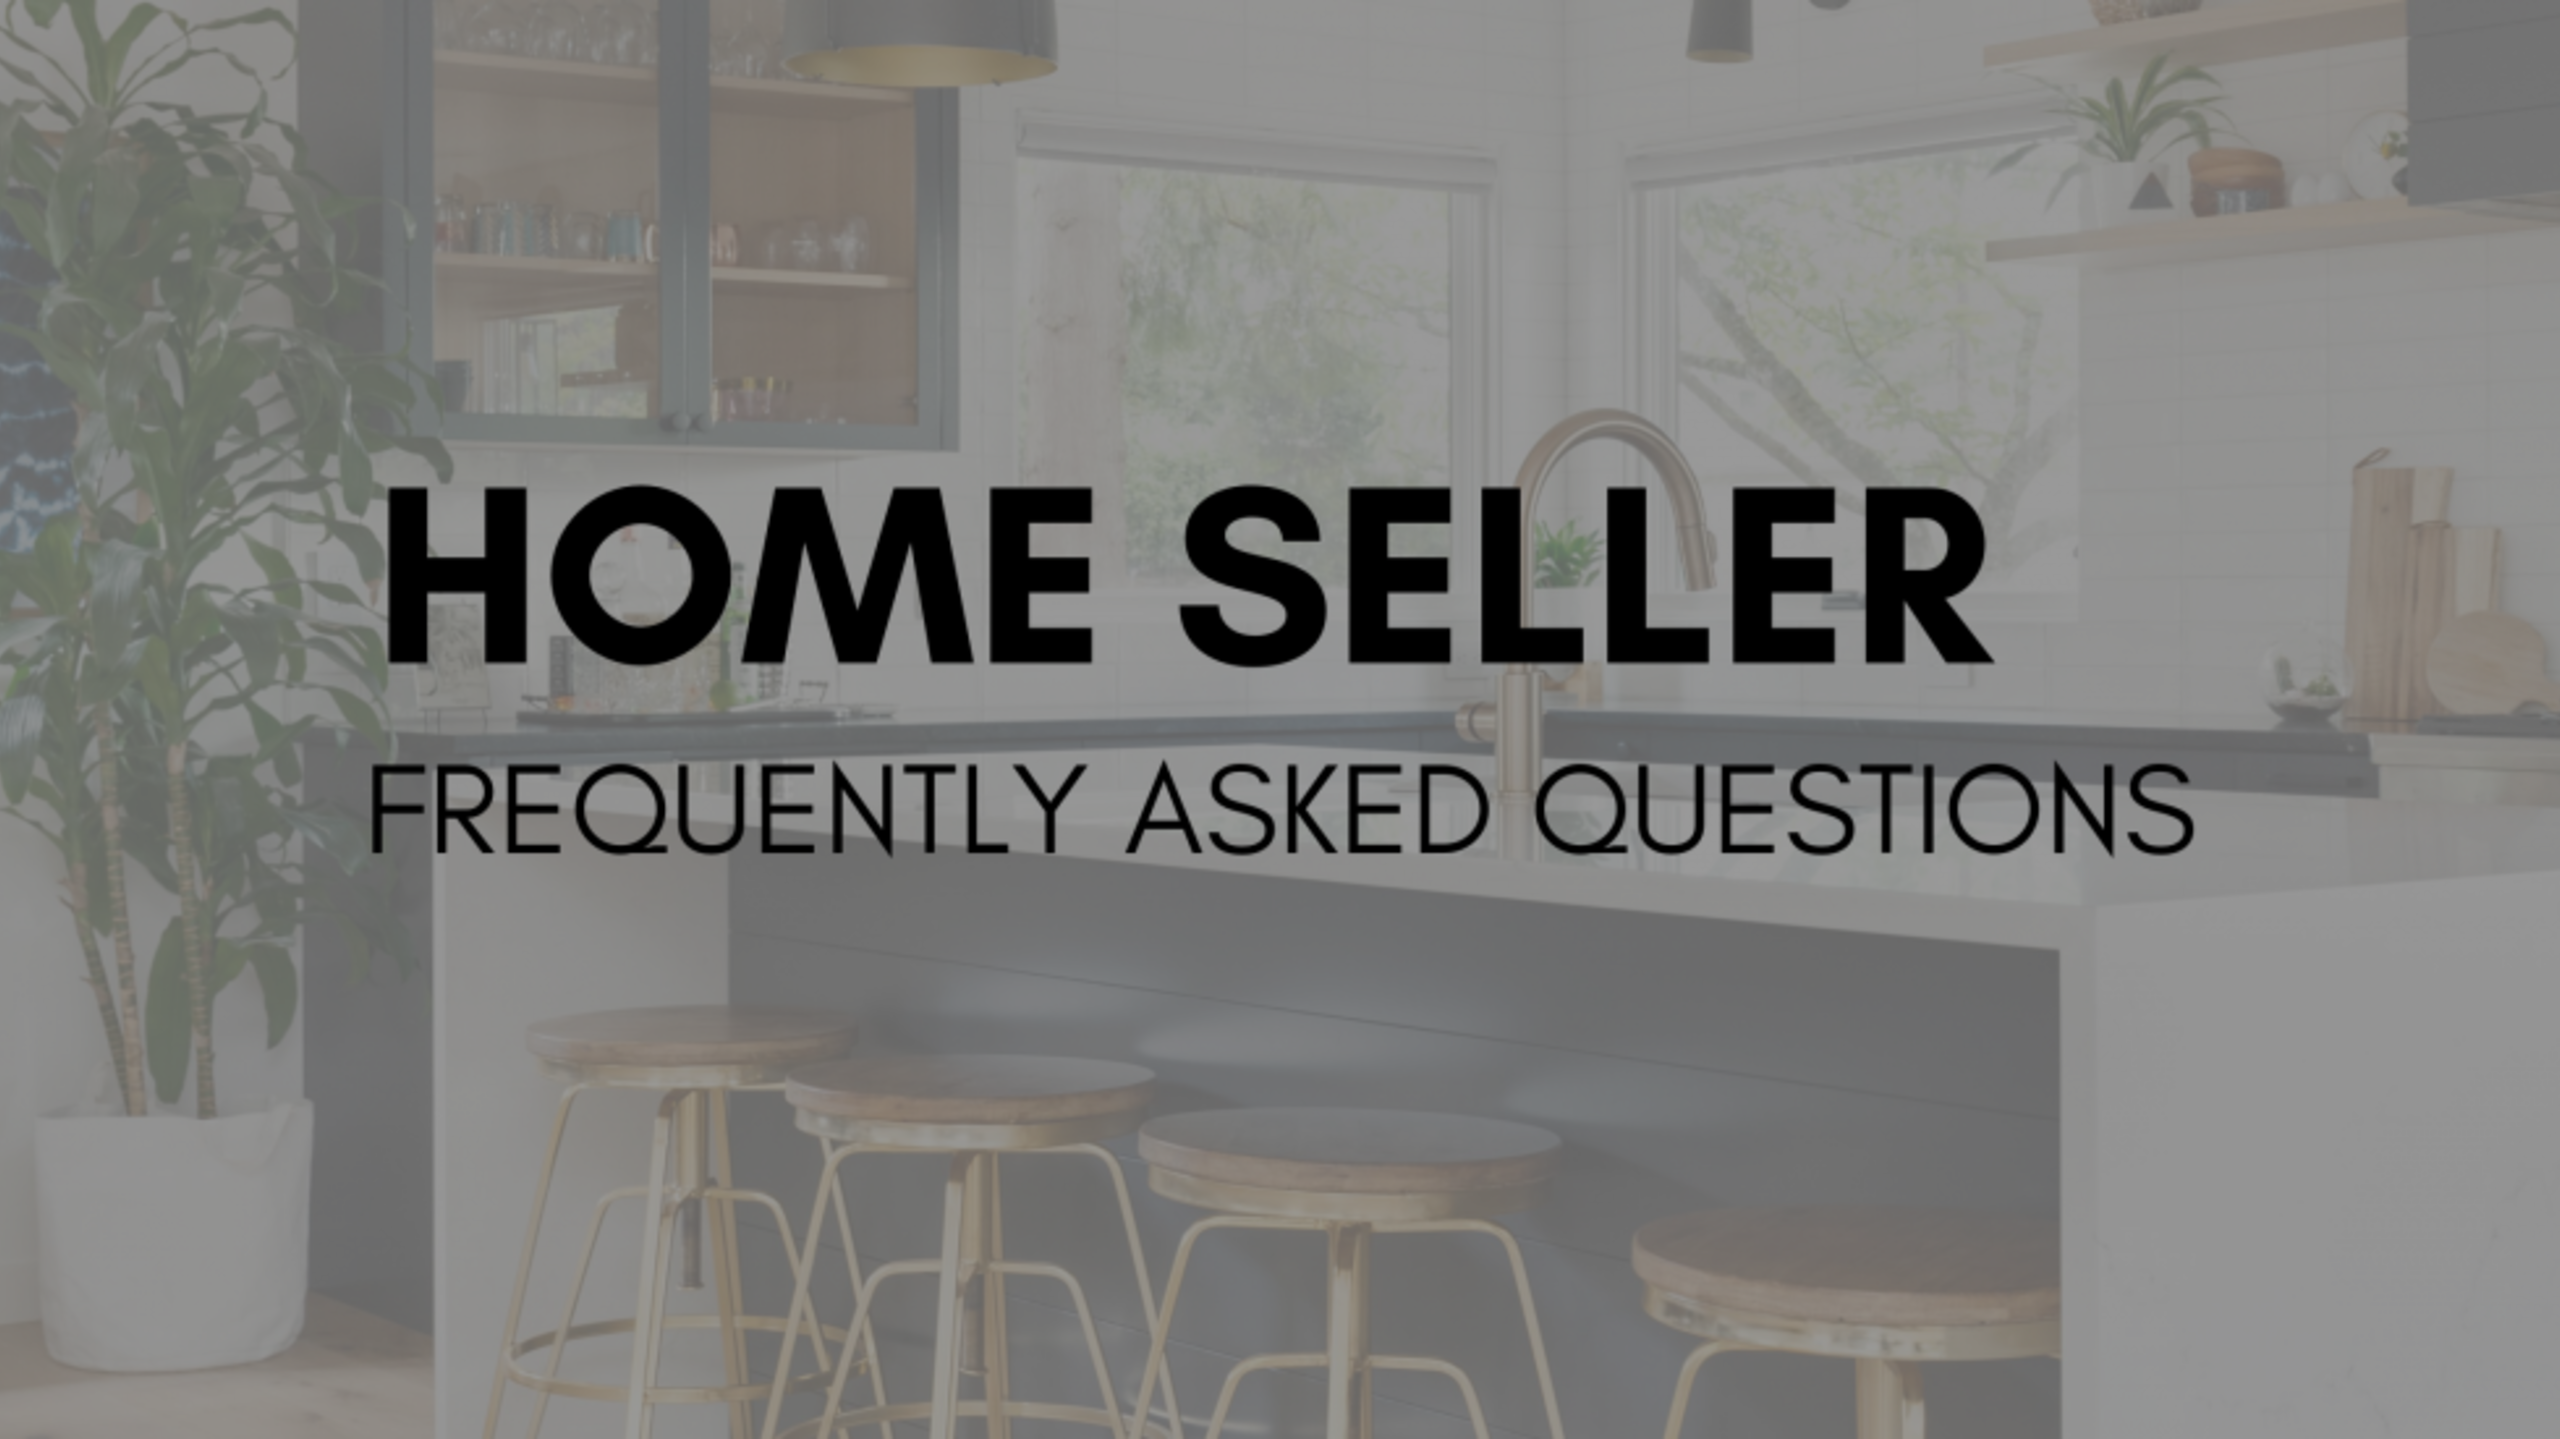 Considered Selling Your Home?